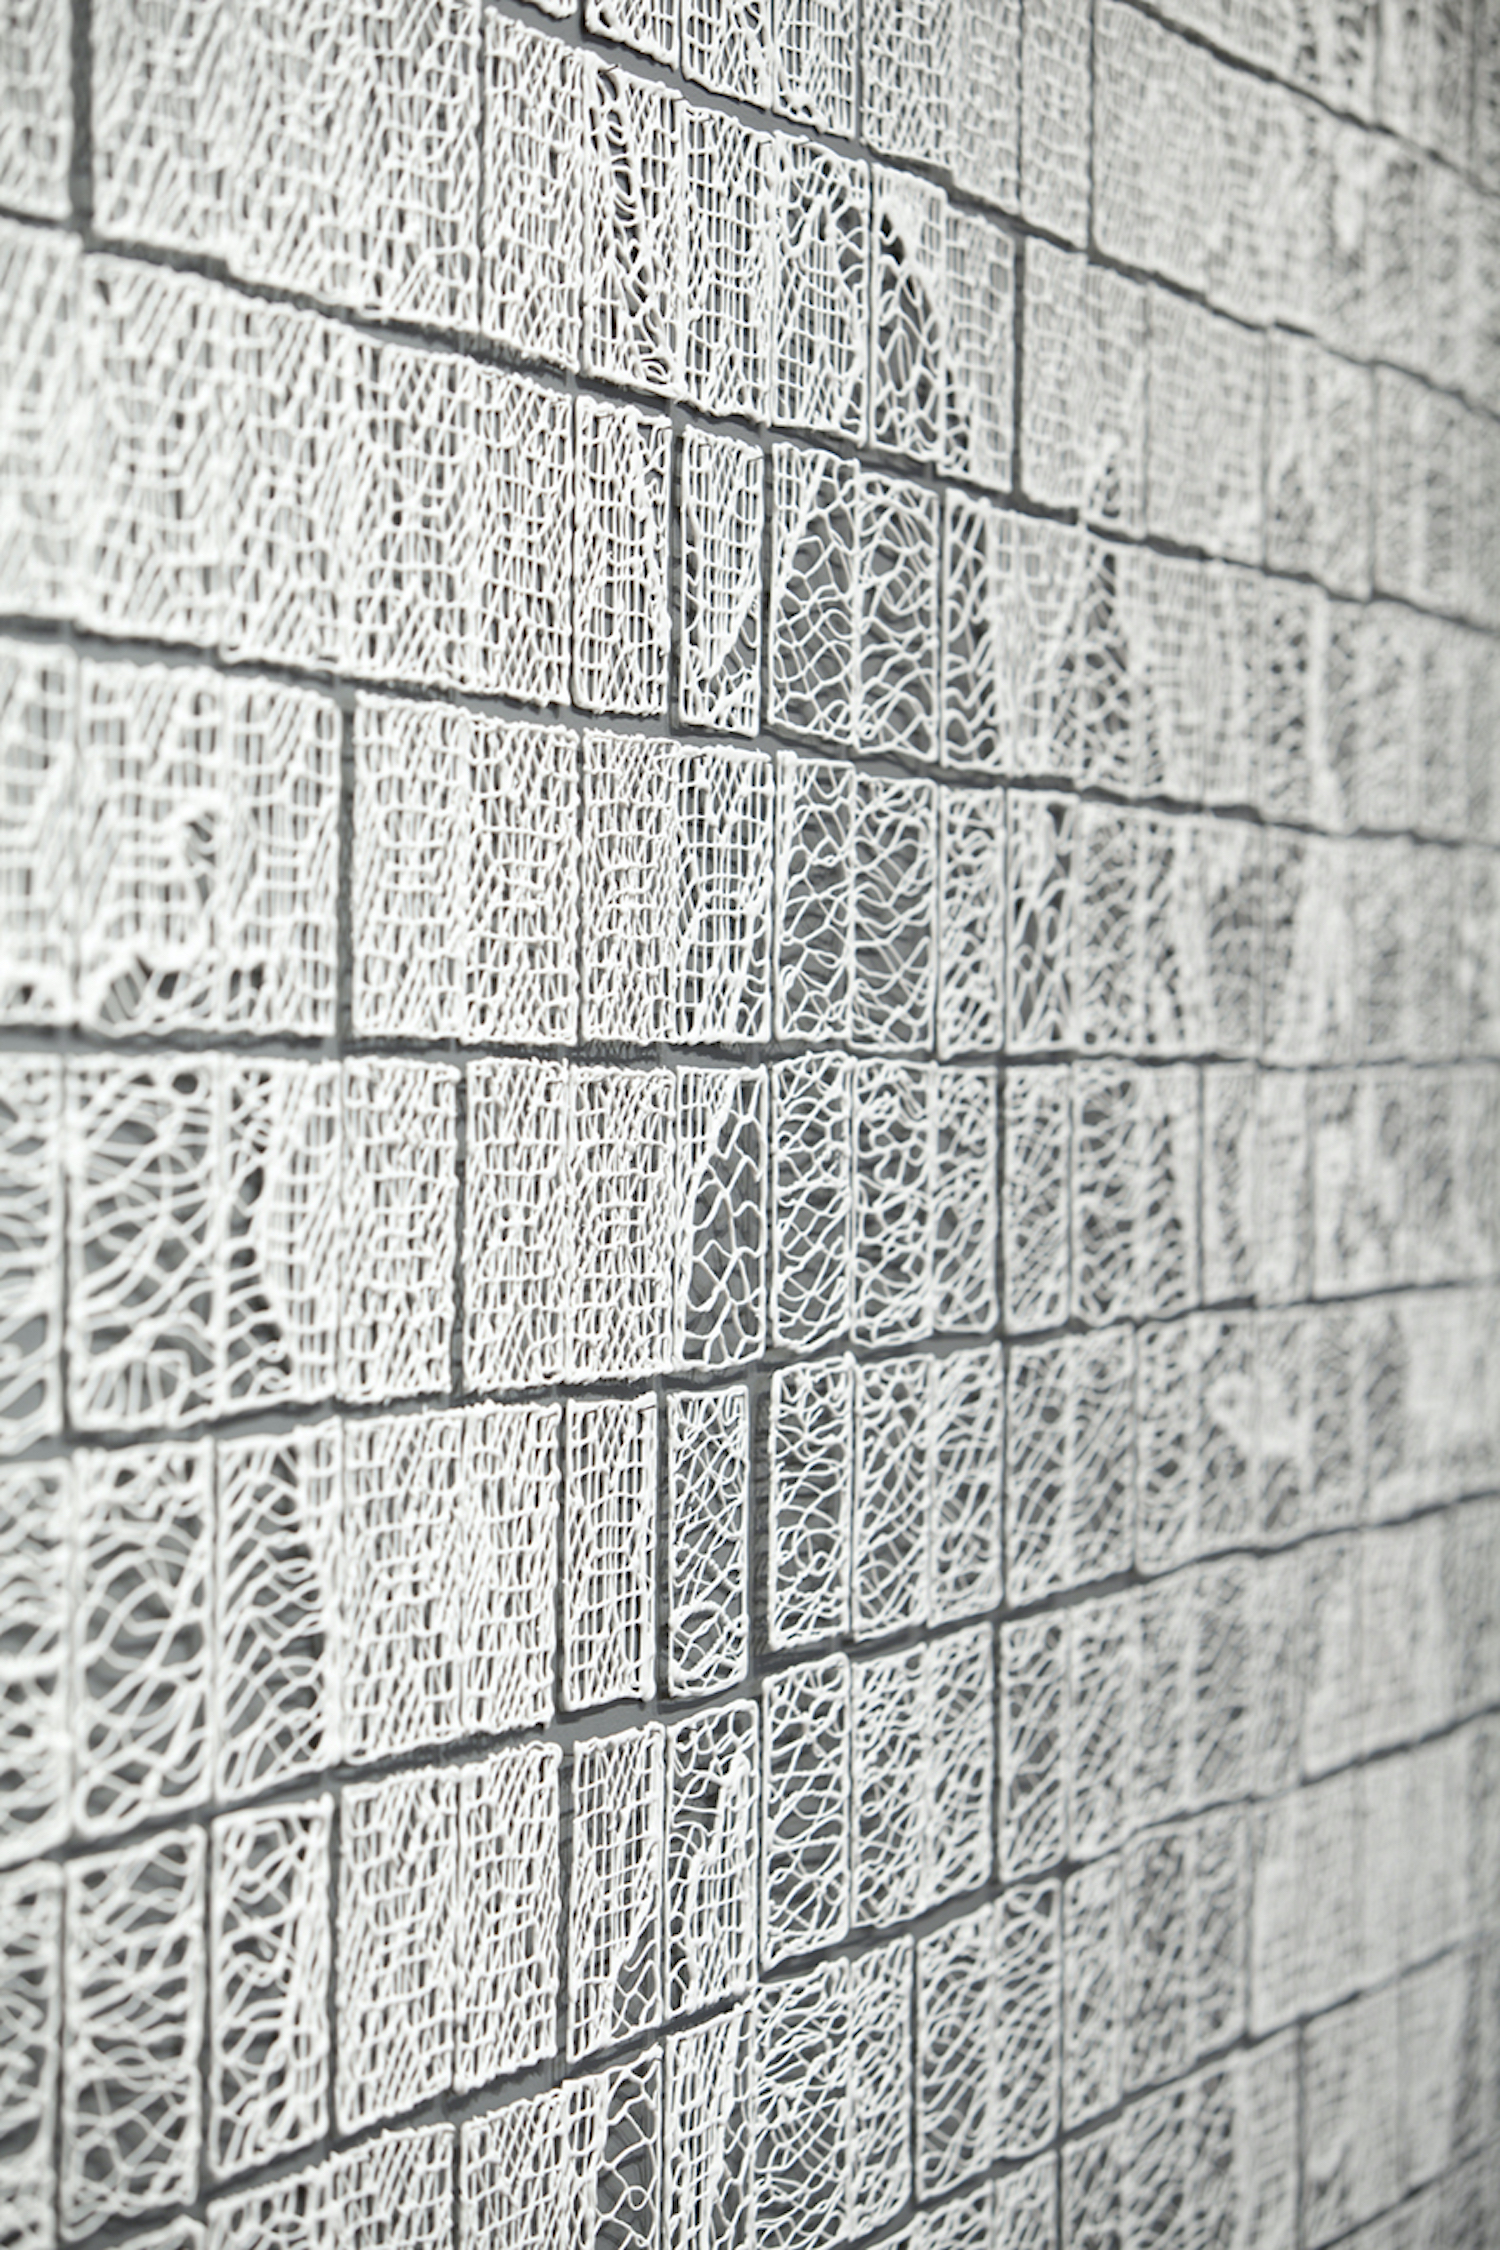 Isabel Ferrand, World Lace, detail (2013)